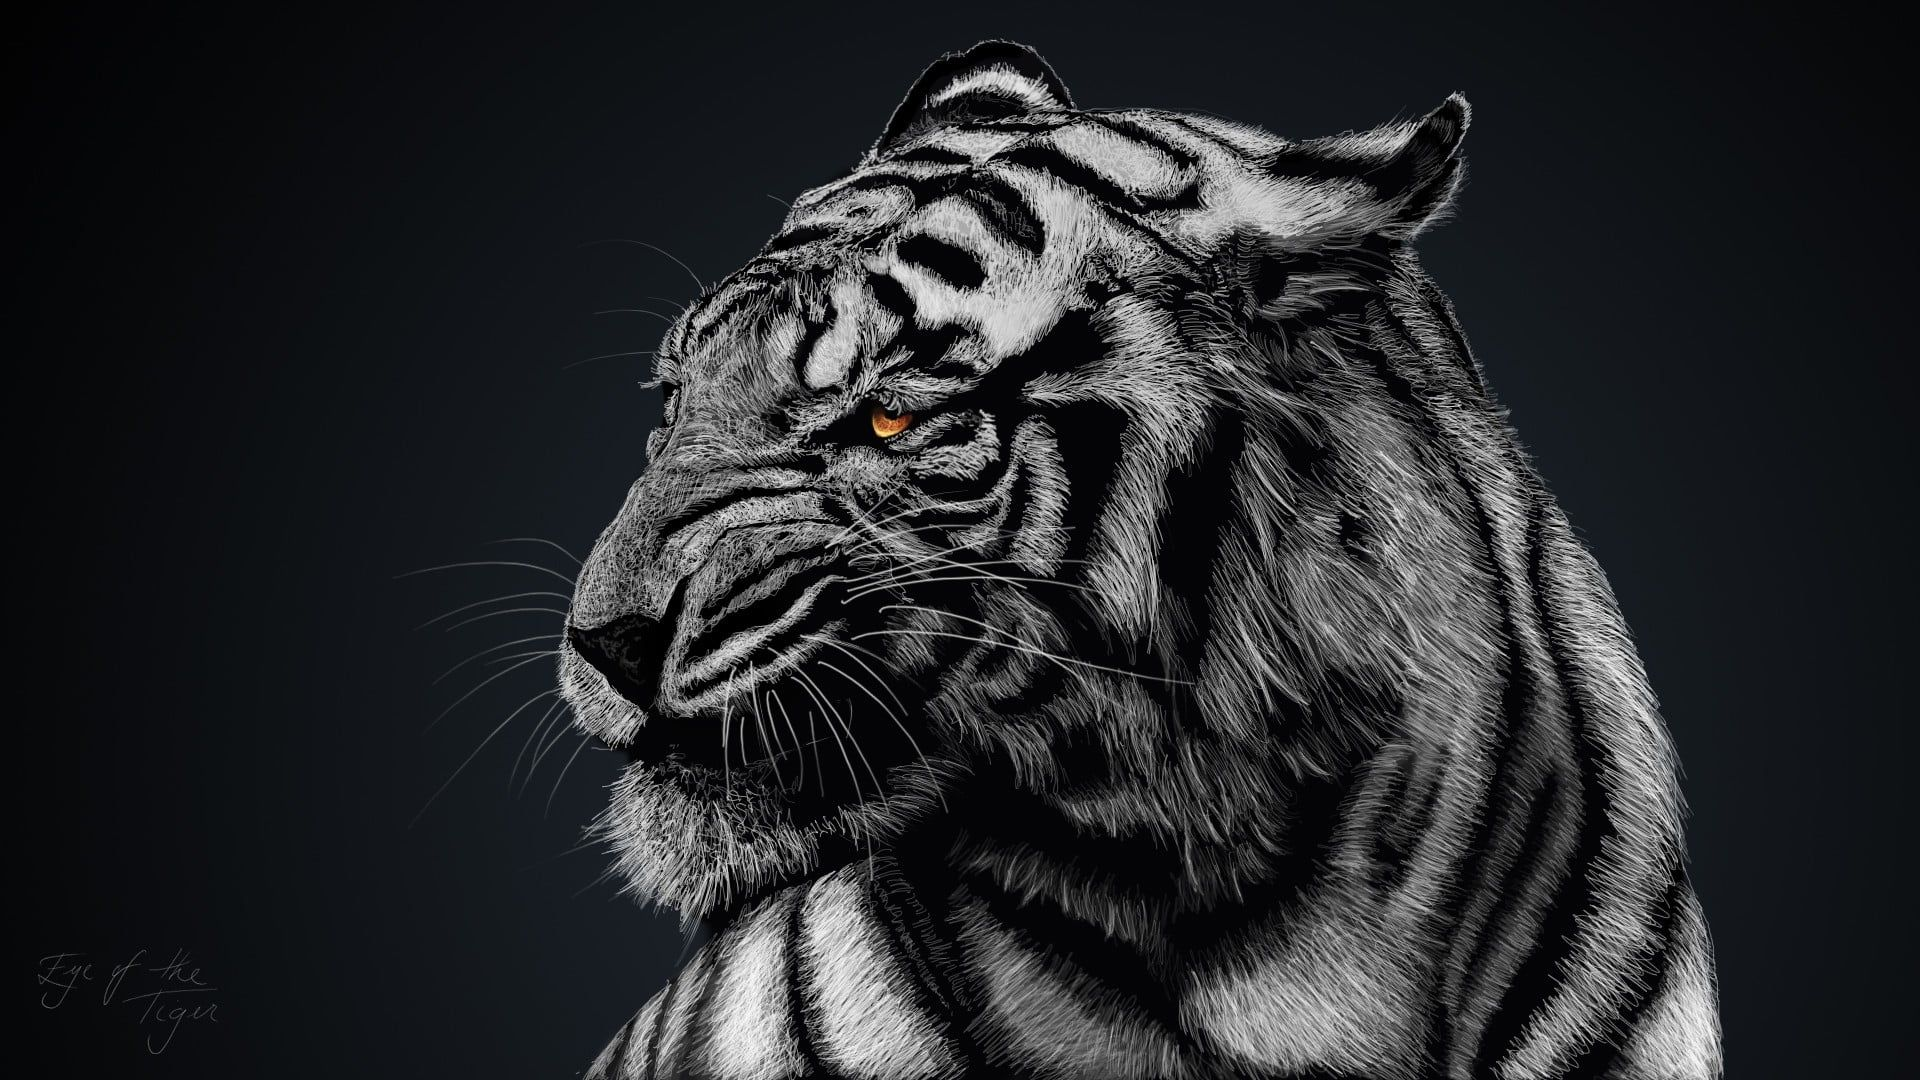 Gray And Black Tiger Greyscale Photo Of Tiger Animals Tiger White Tigers Nature 1080p Wallpaper Hdwallpaper In 2020 Tiger Wallpaper Tiger Artwork Tiger Pictures